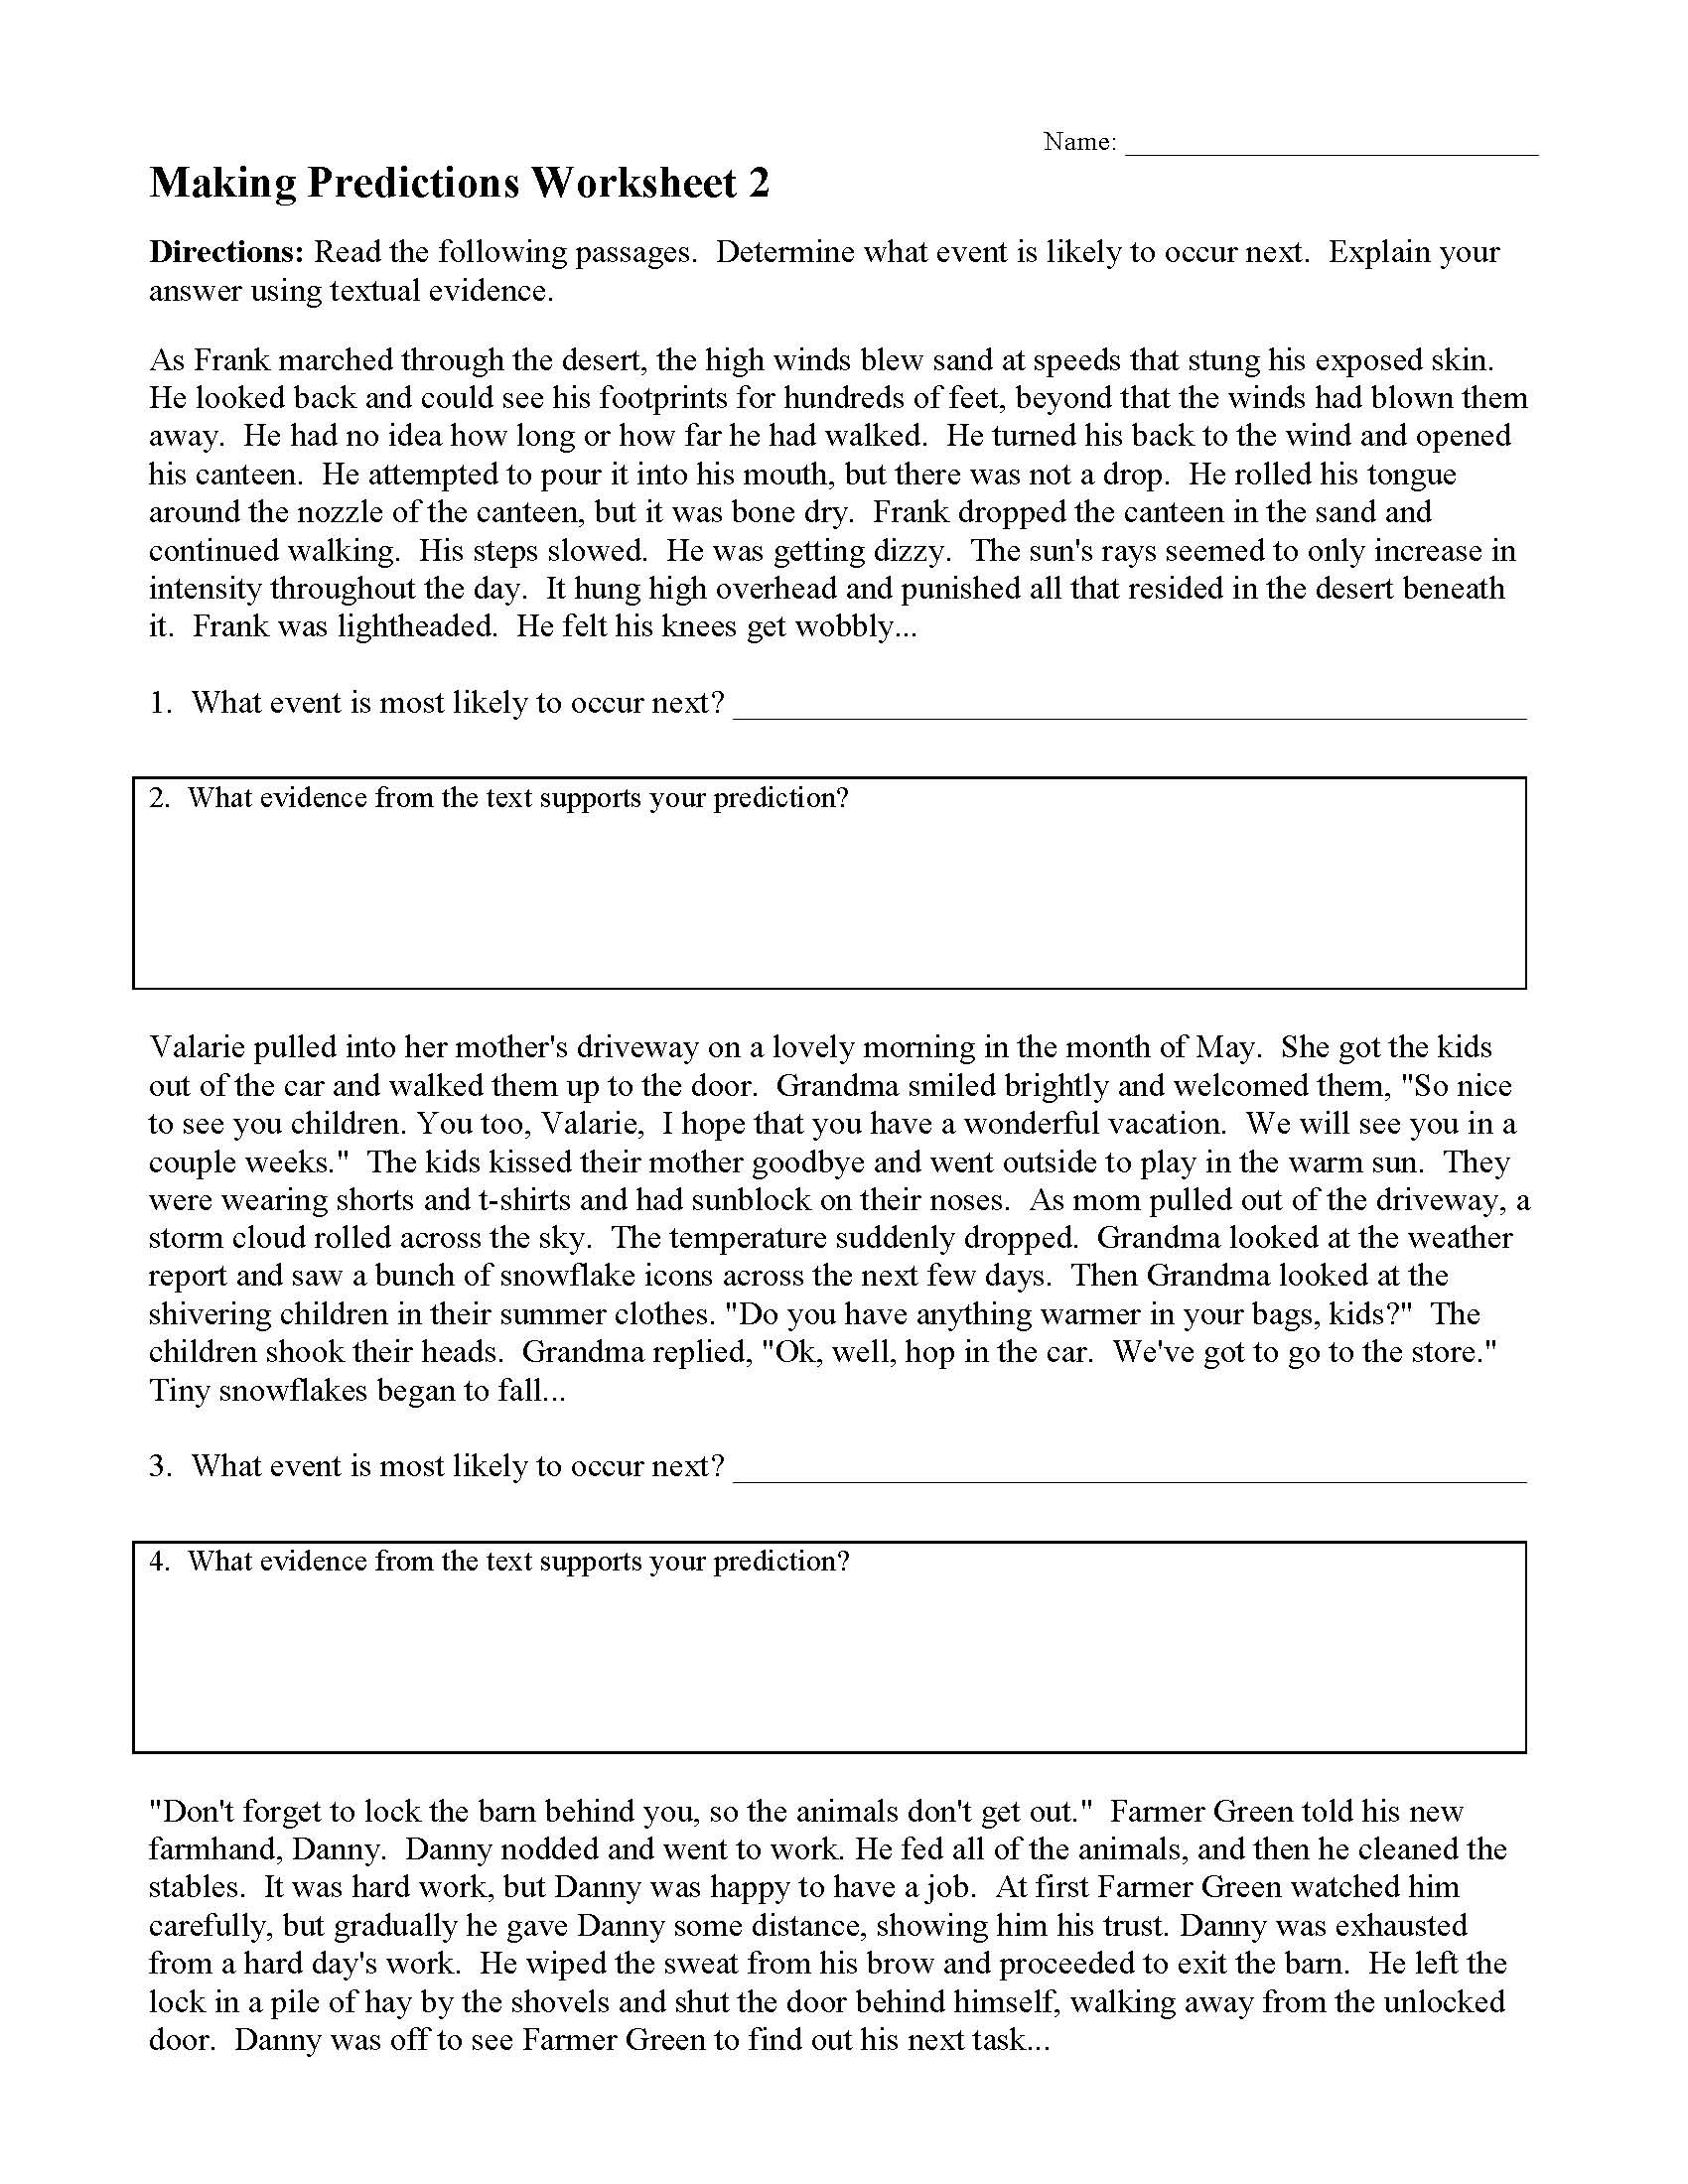 Making Predictions Worksheets 2nd Grade Making Predictions Worksheets and Lessons